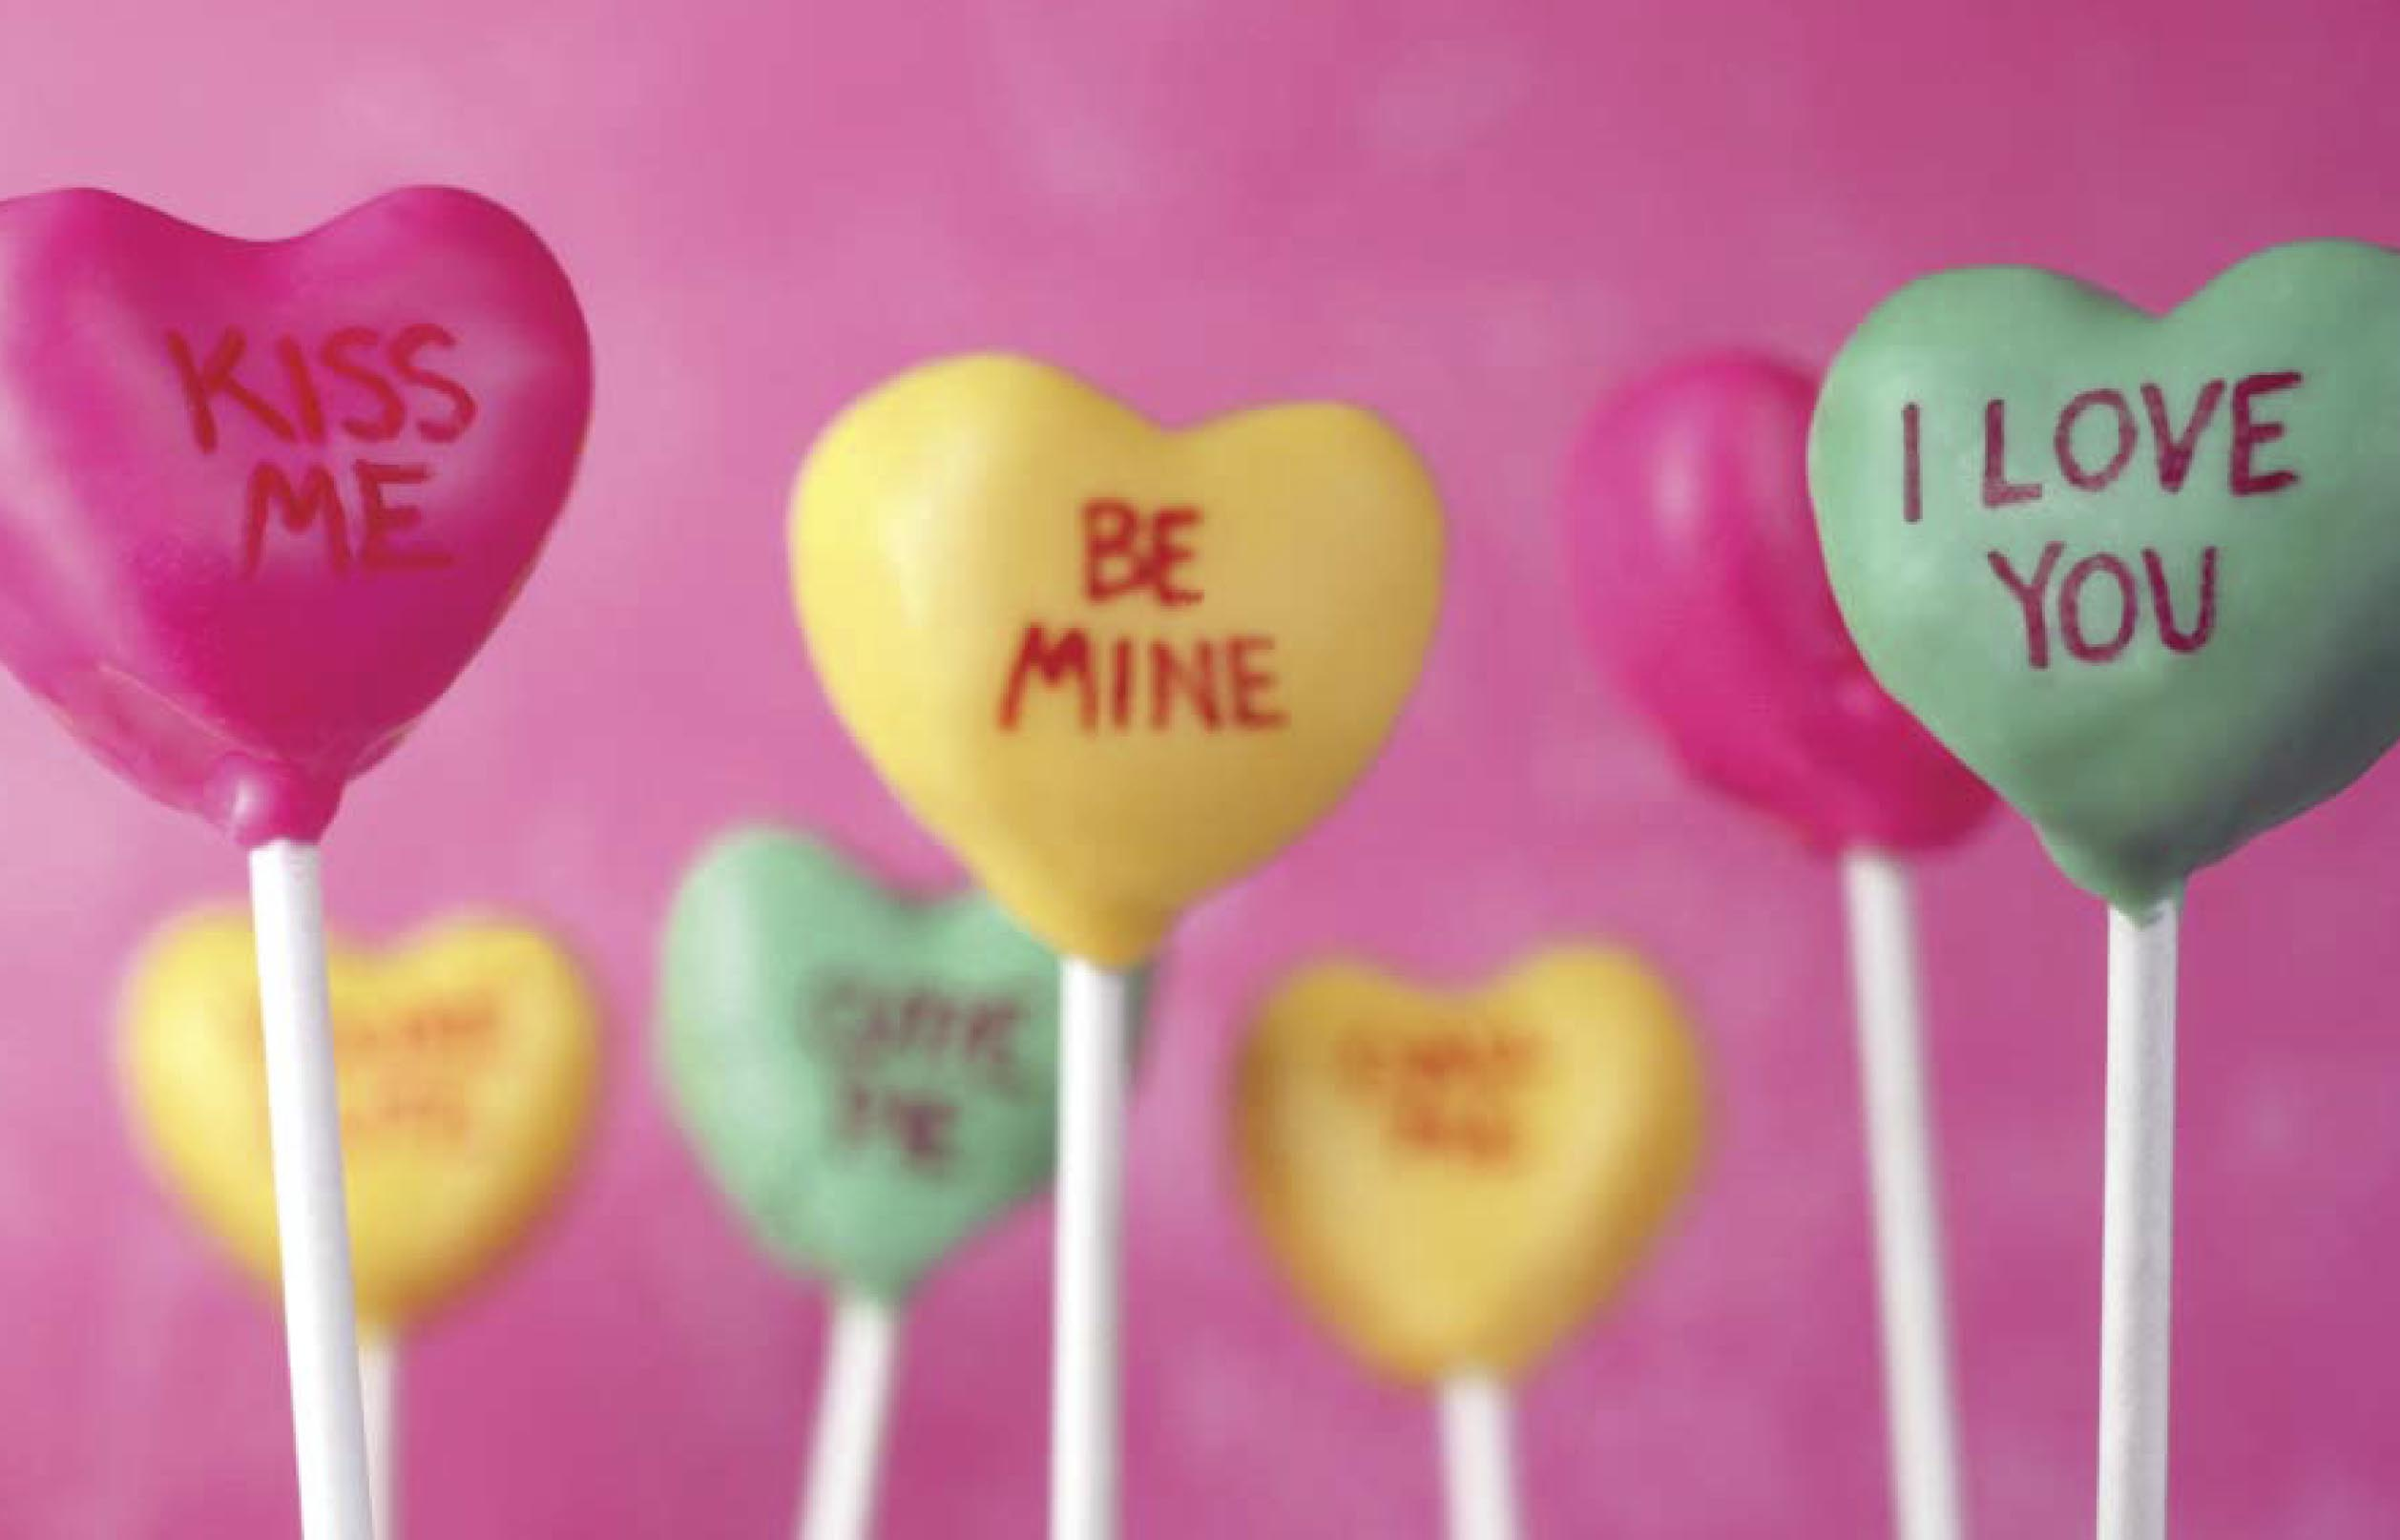 Give your loved one cake pops for Valentine's Day!